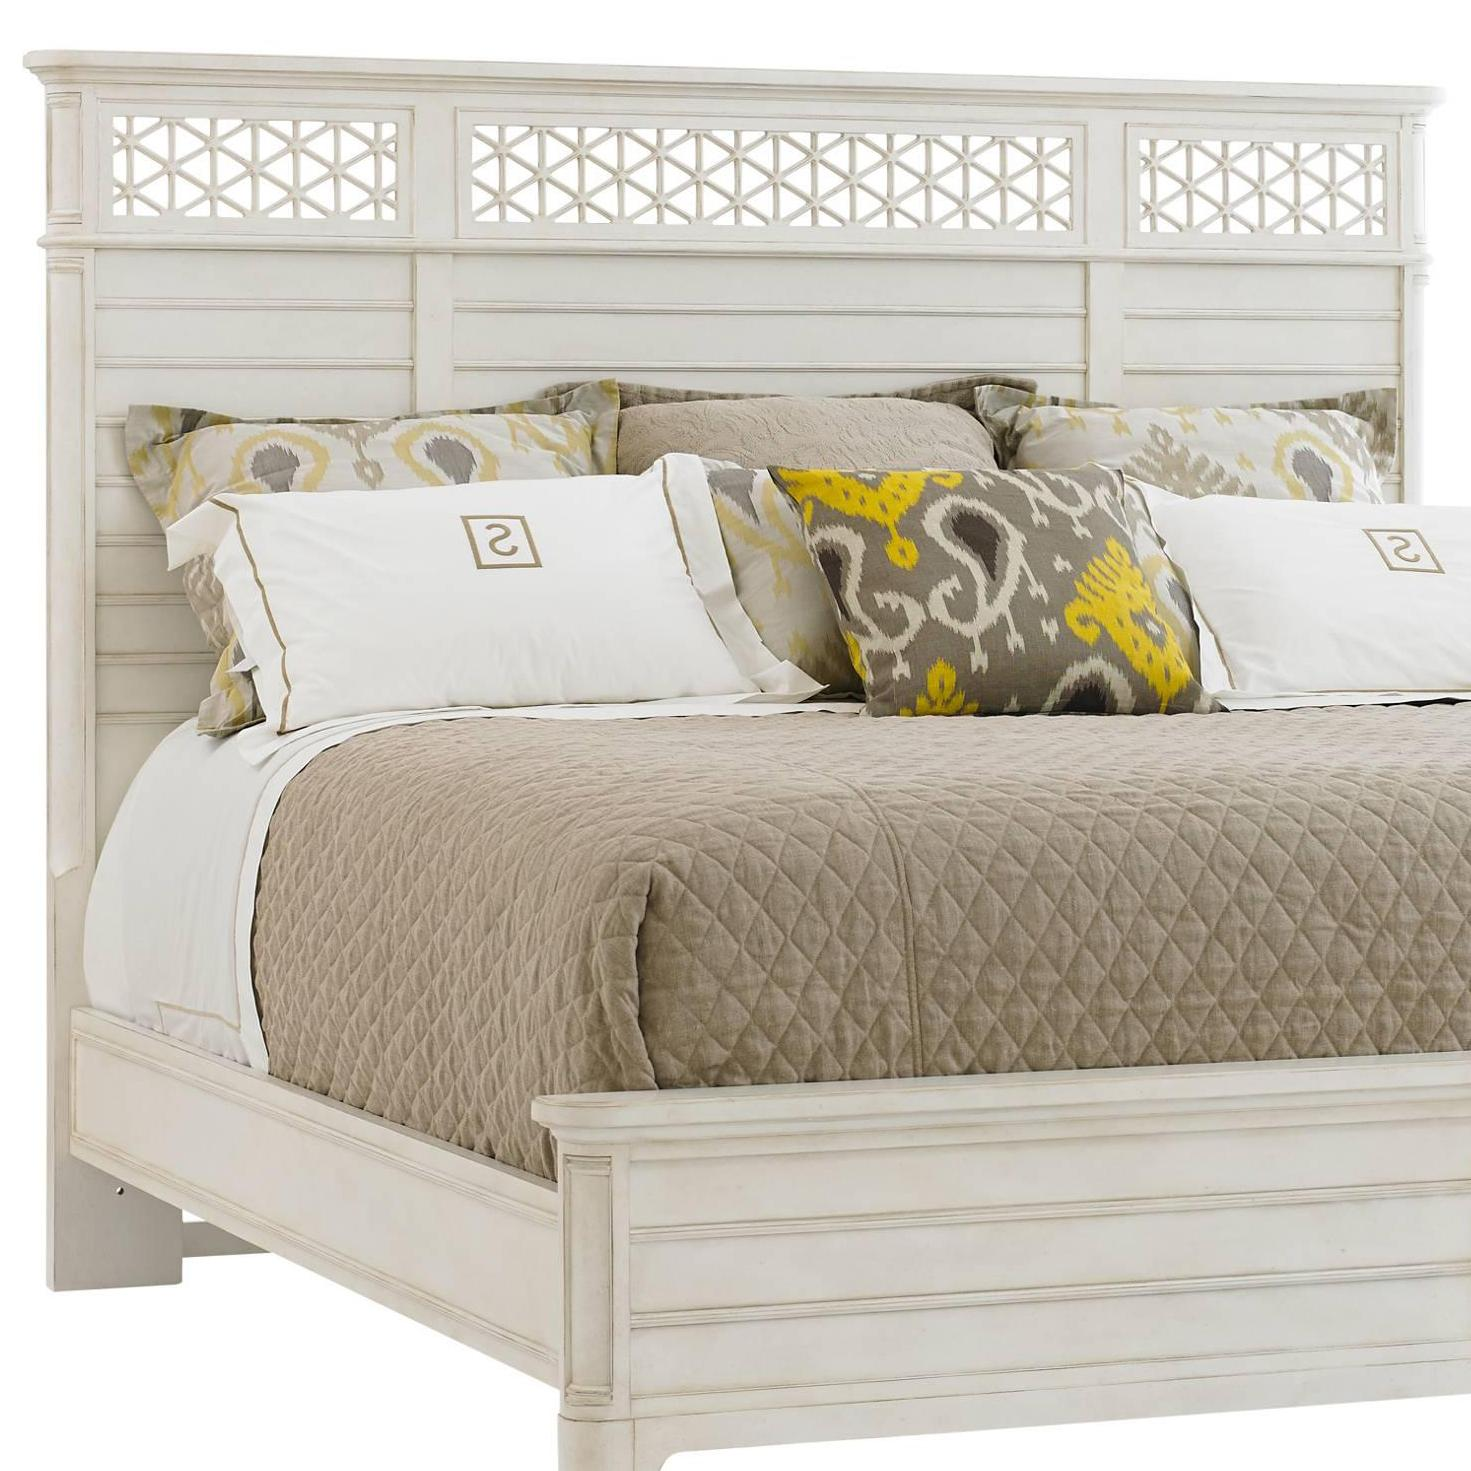 Stanley furniture cypress grove 451 23 145 cottage style for California king headboard